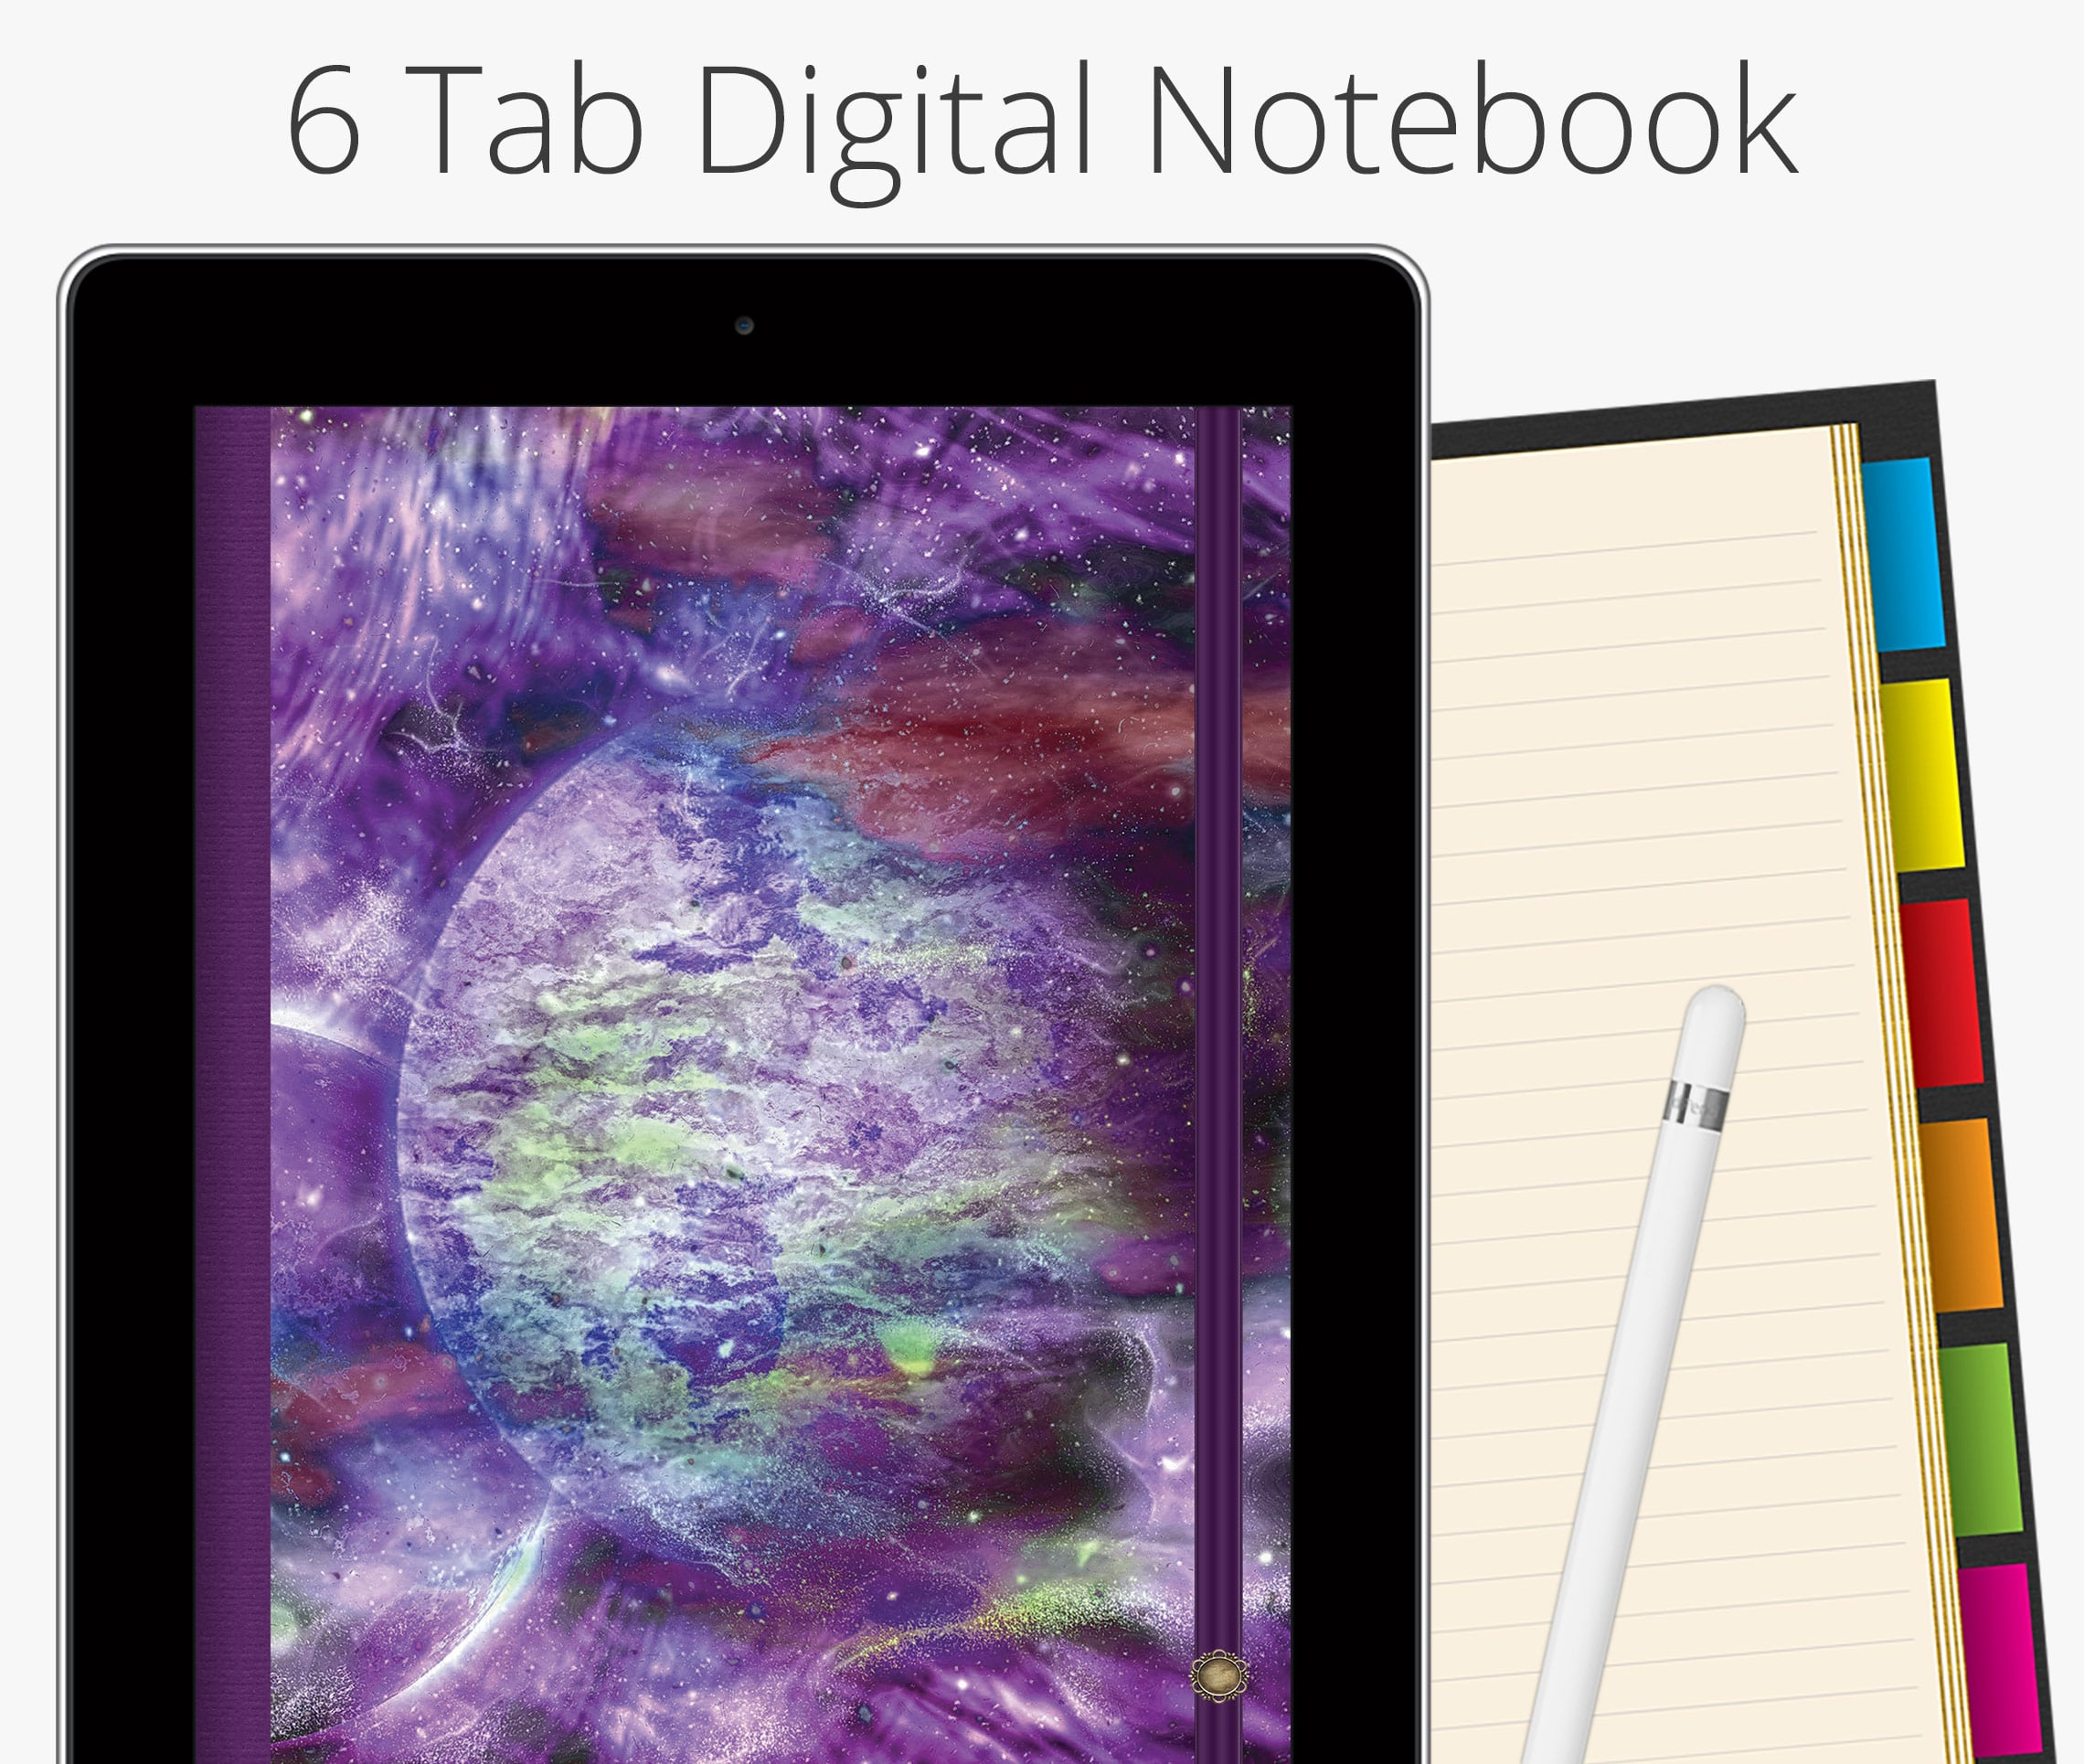 6 Tab Digital Notebook, Purple Planet